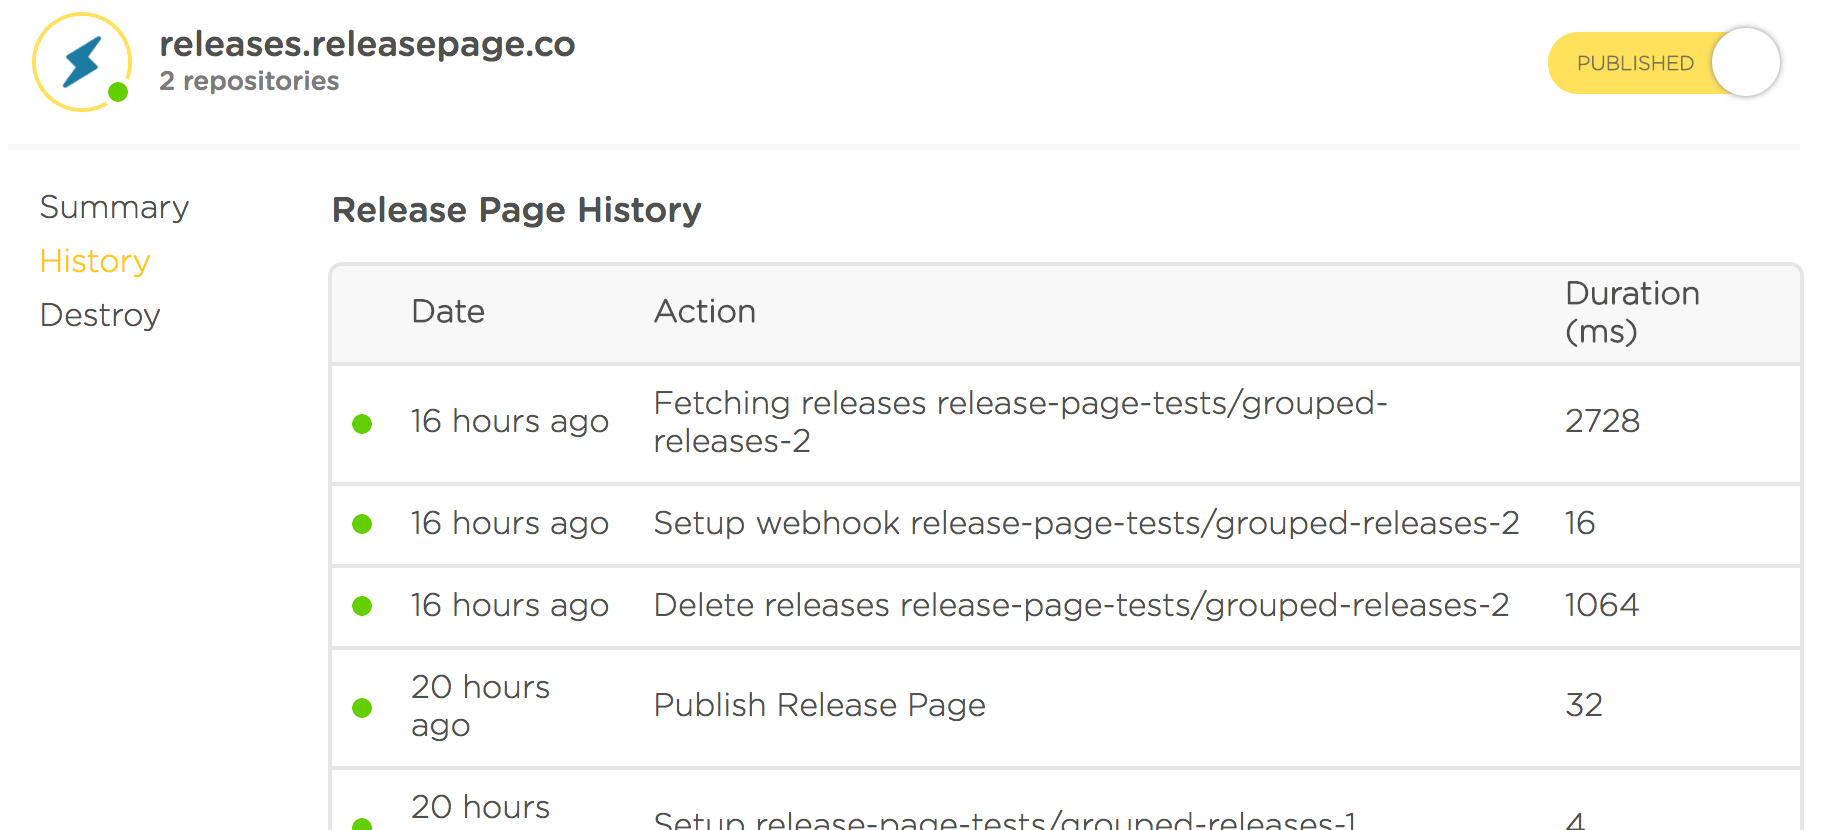 release-page-details-page-history-tab